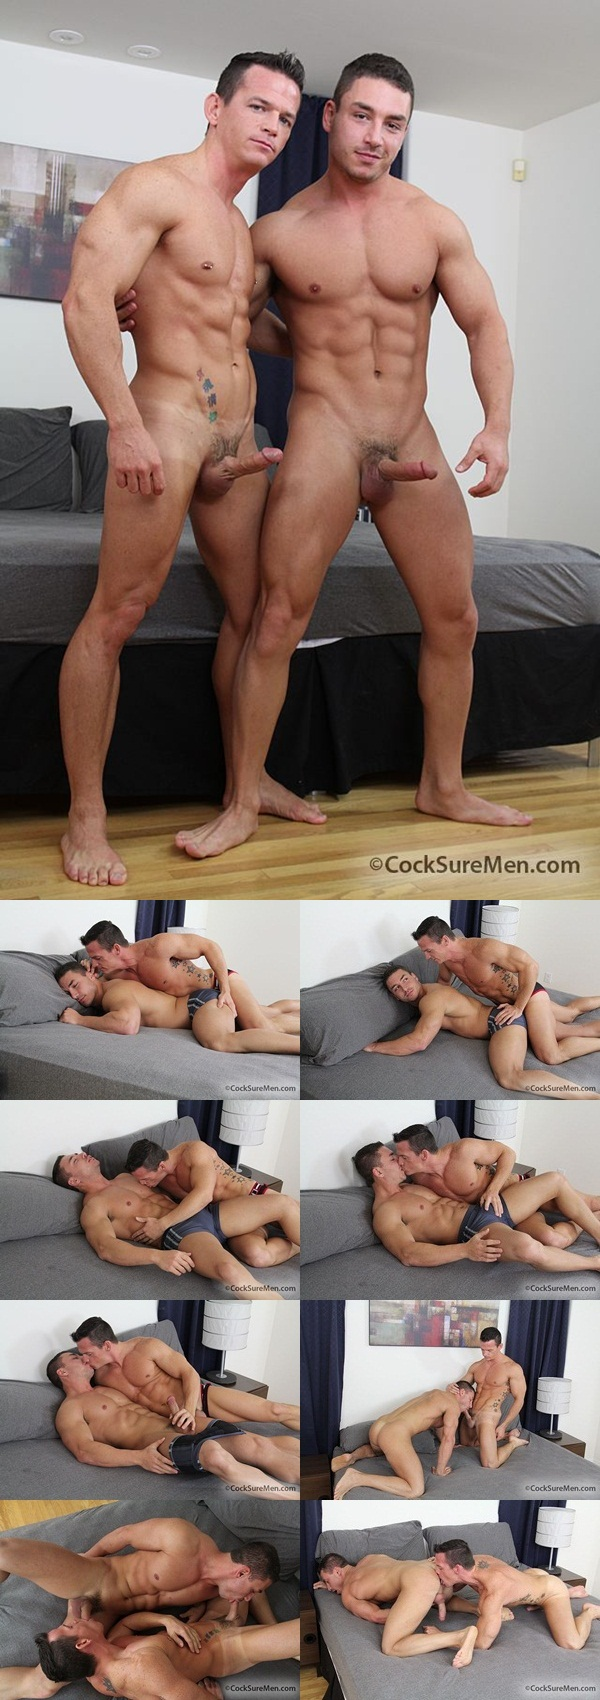 Marc Dylan fucked by Calvin Knight at CockSure Men Download Full Stud Gay Porn Movies Here